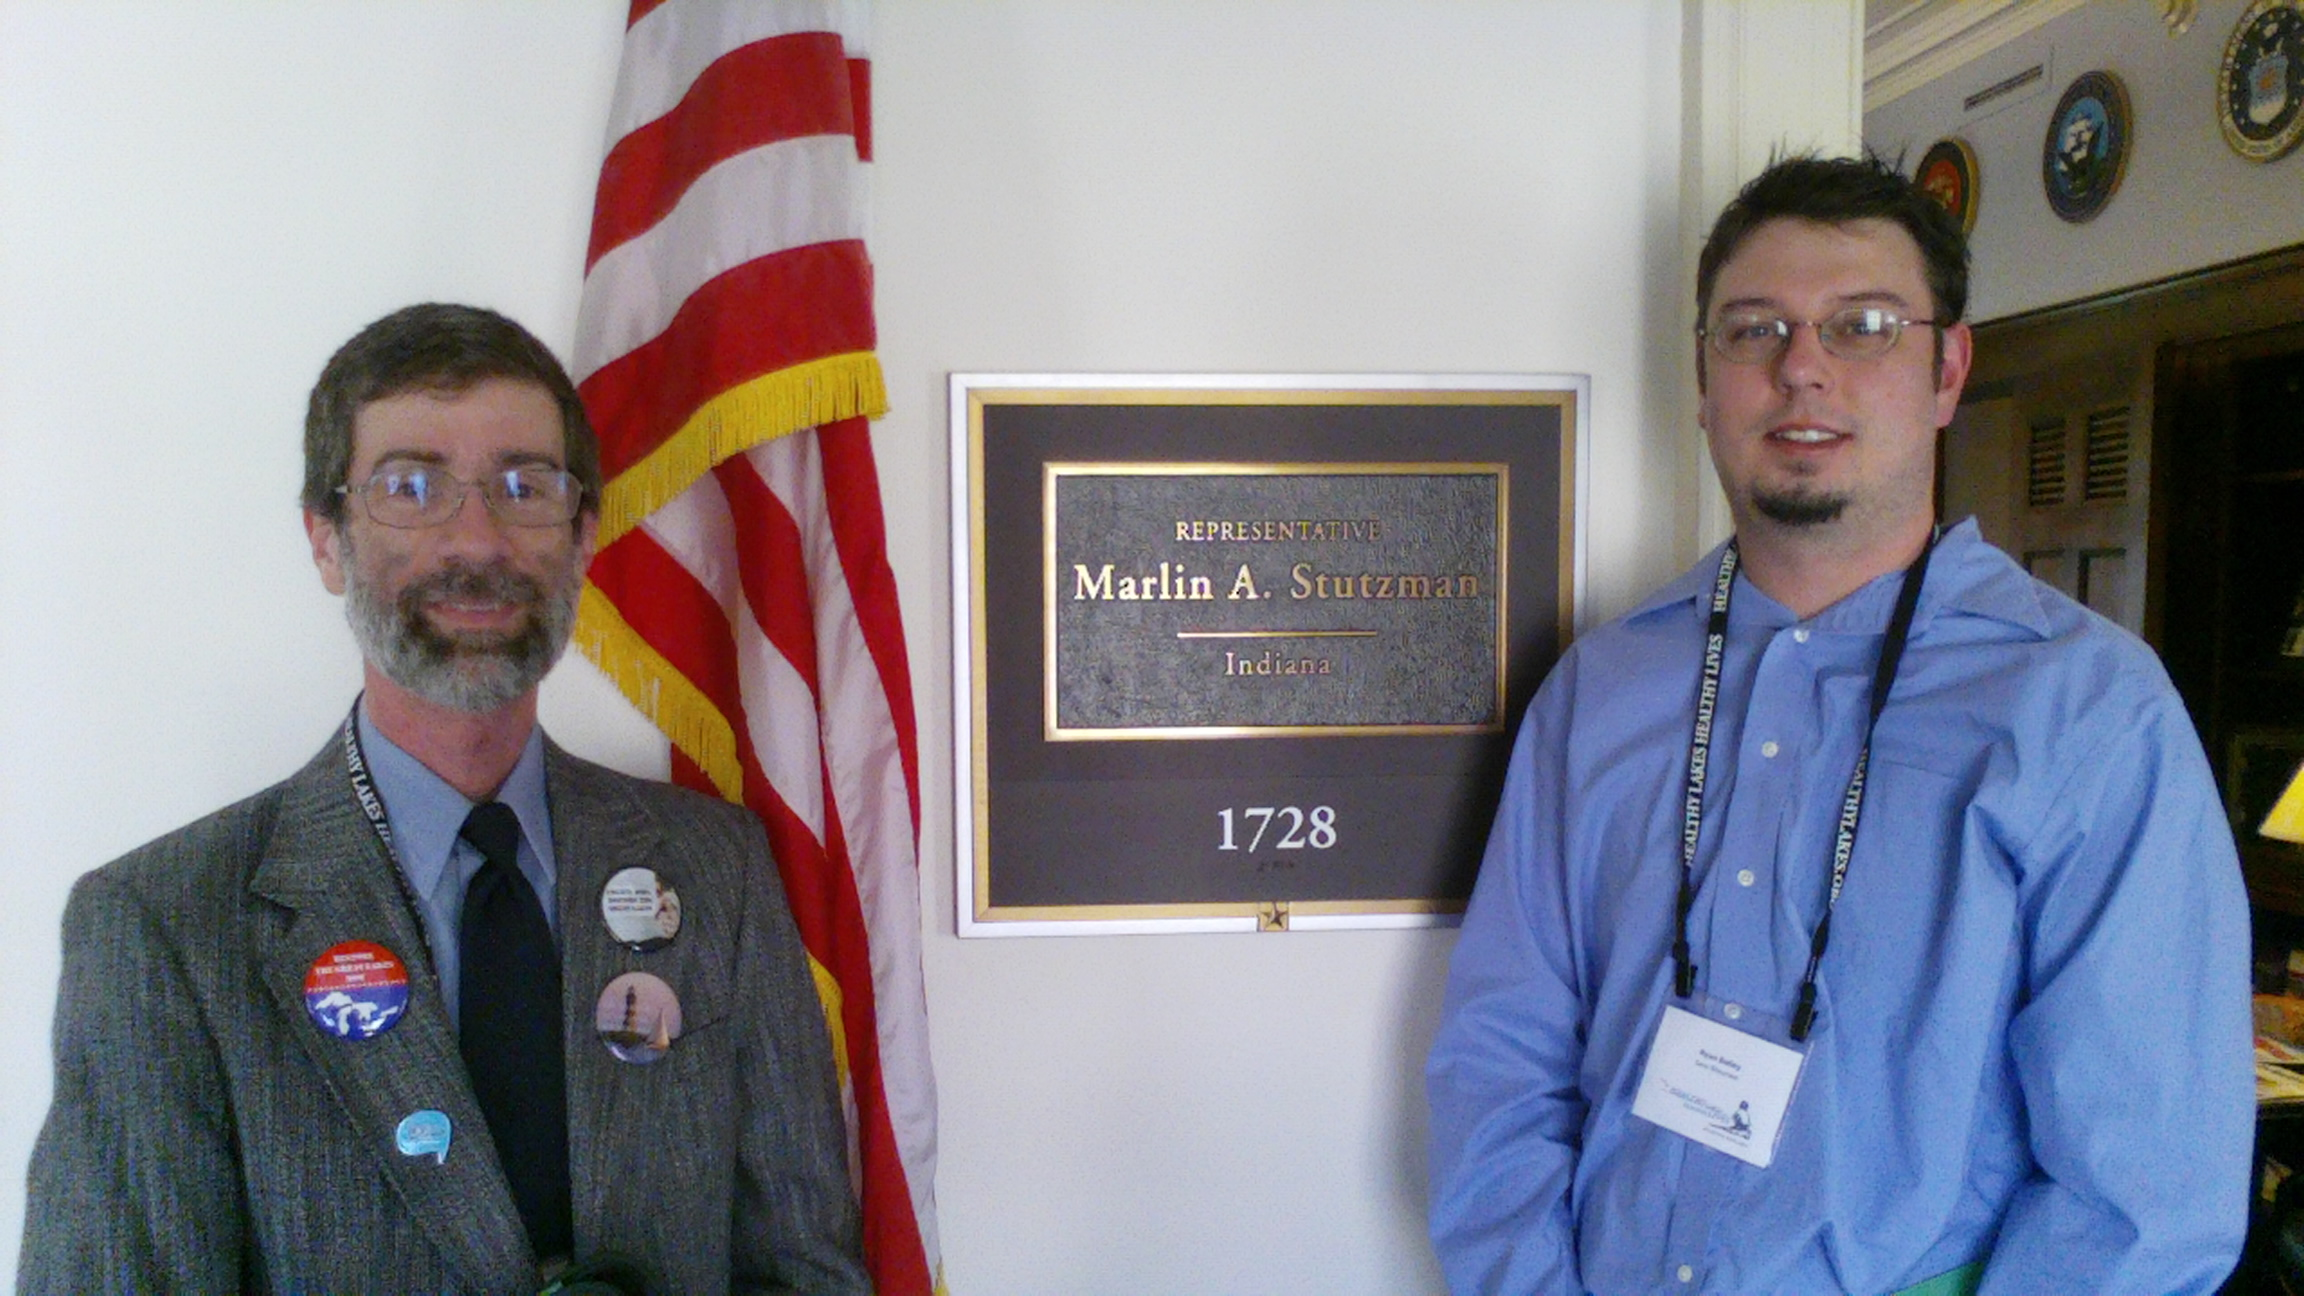 Abigail King, Bruce Allen & Ryan Bailey from Save Maumee - outside U.S. House of Representative Stutzman